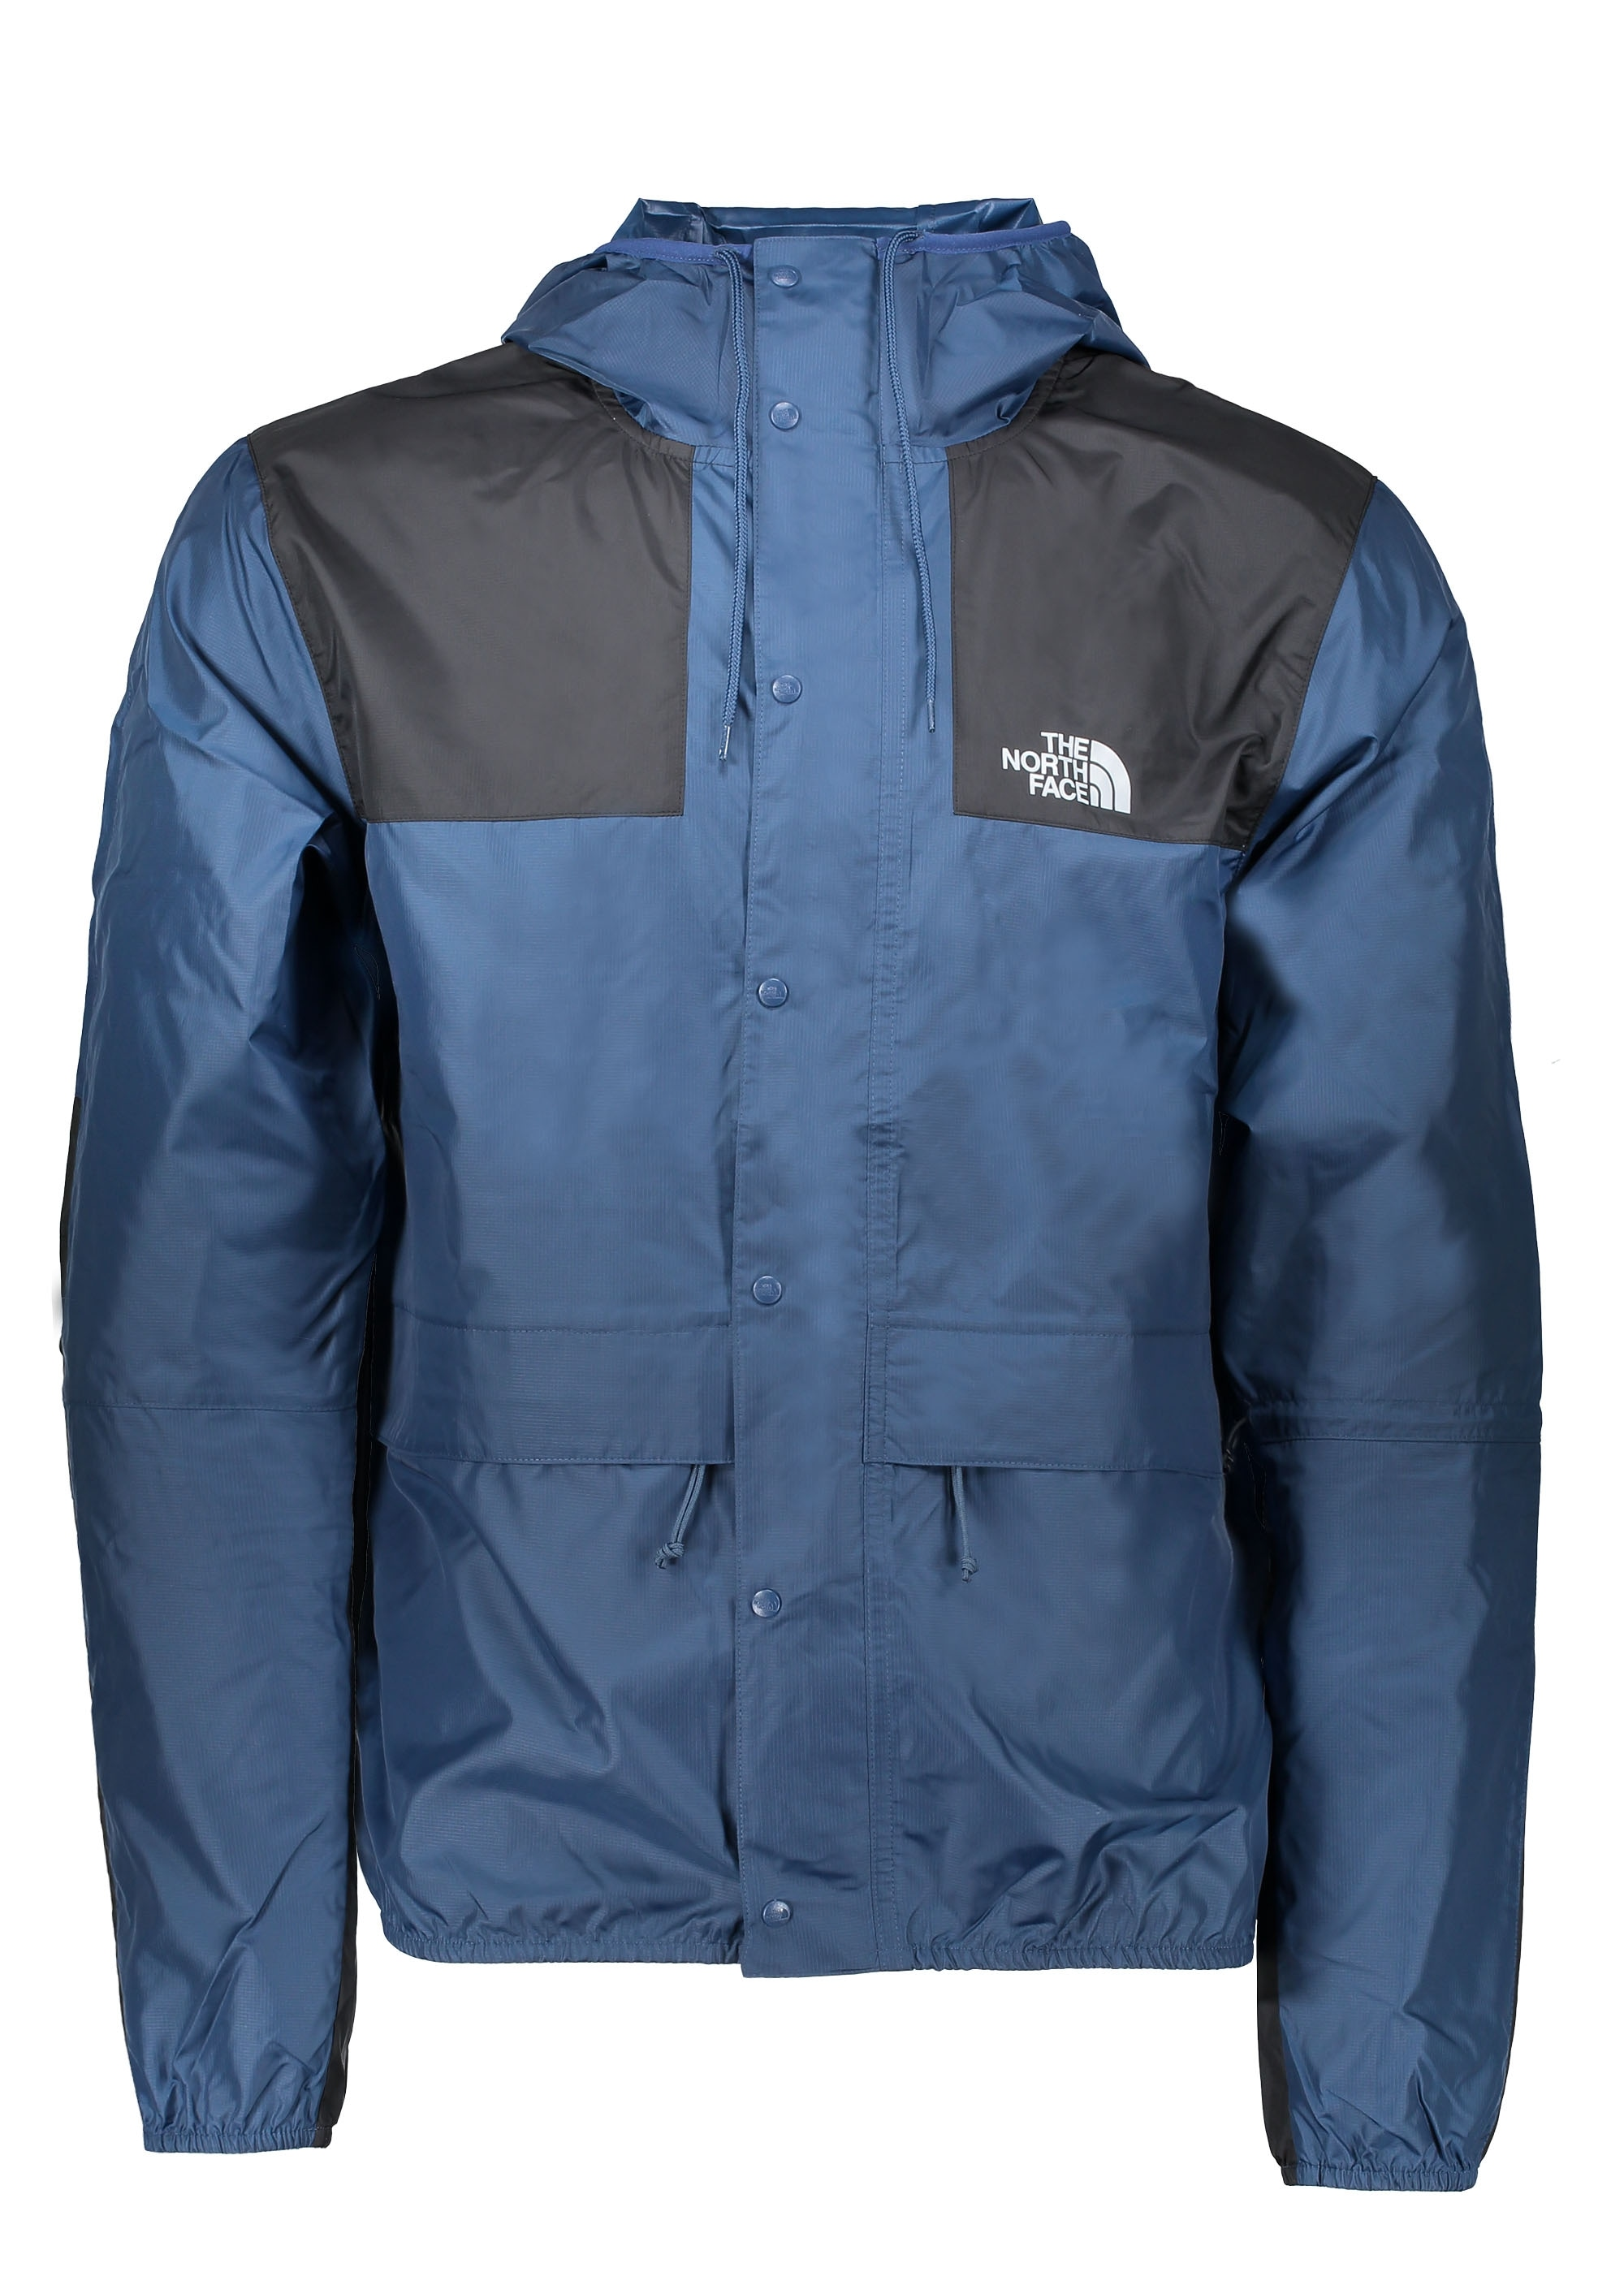 blue north face jacket with hood